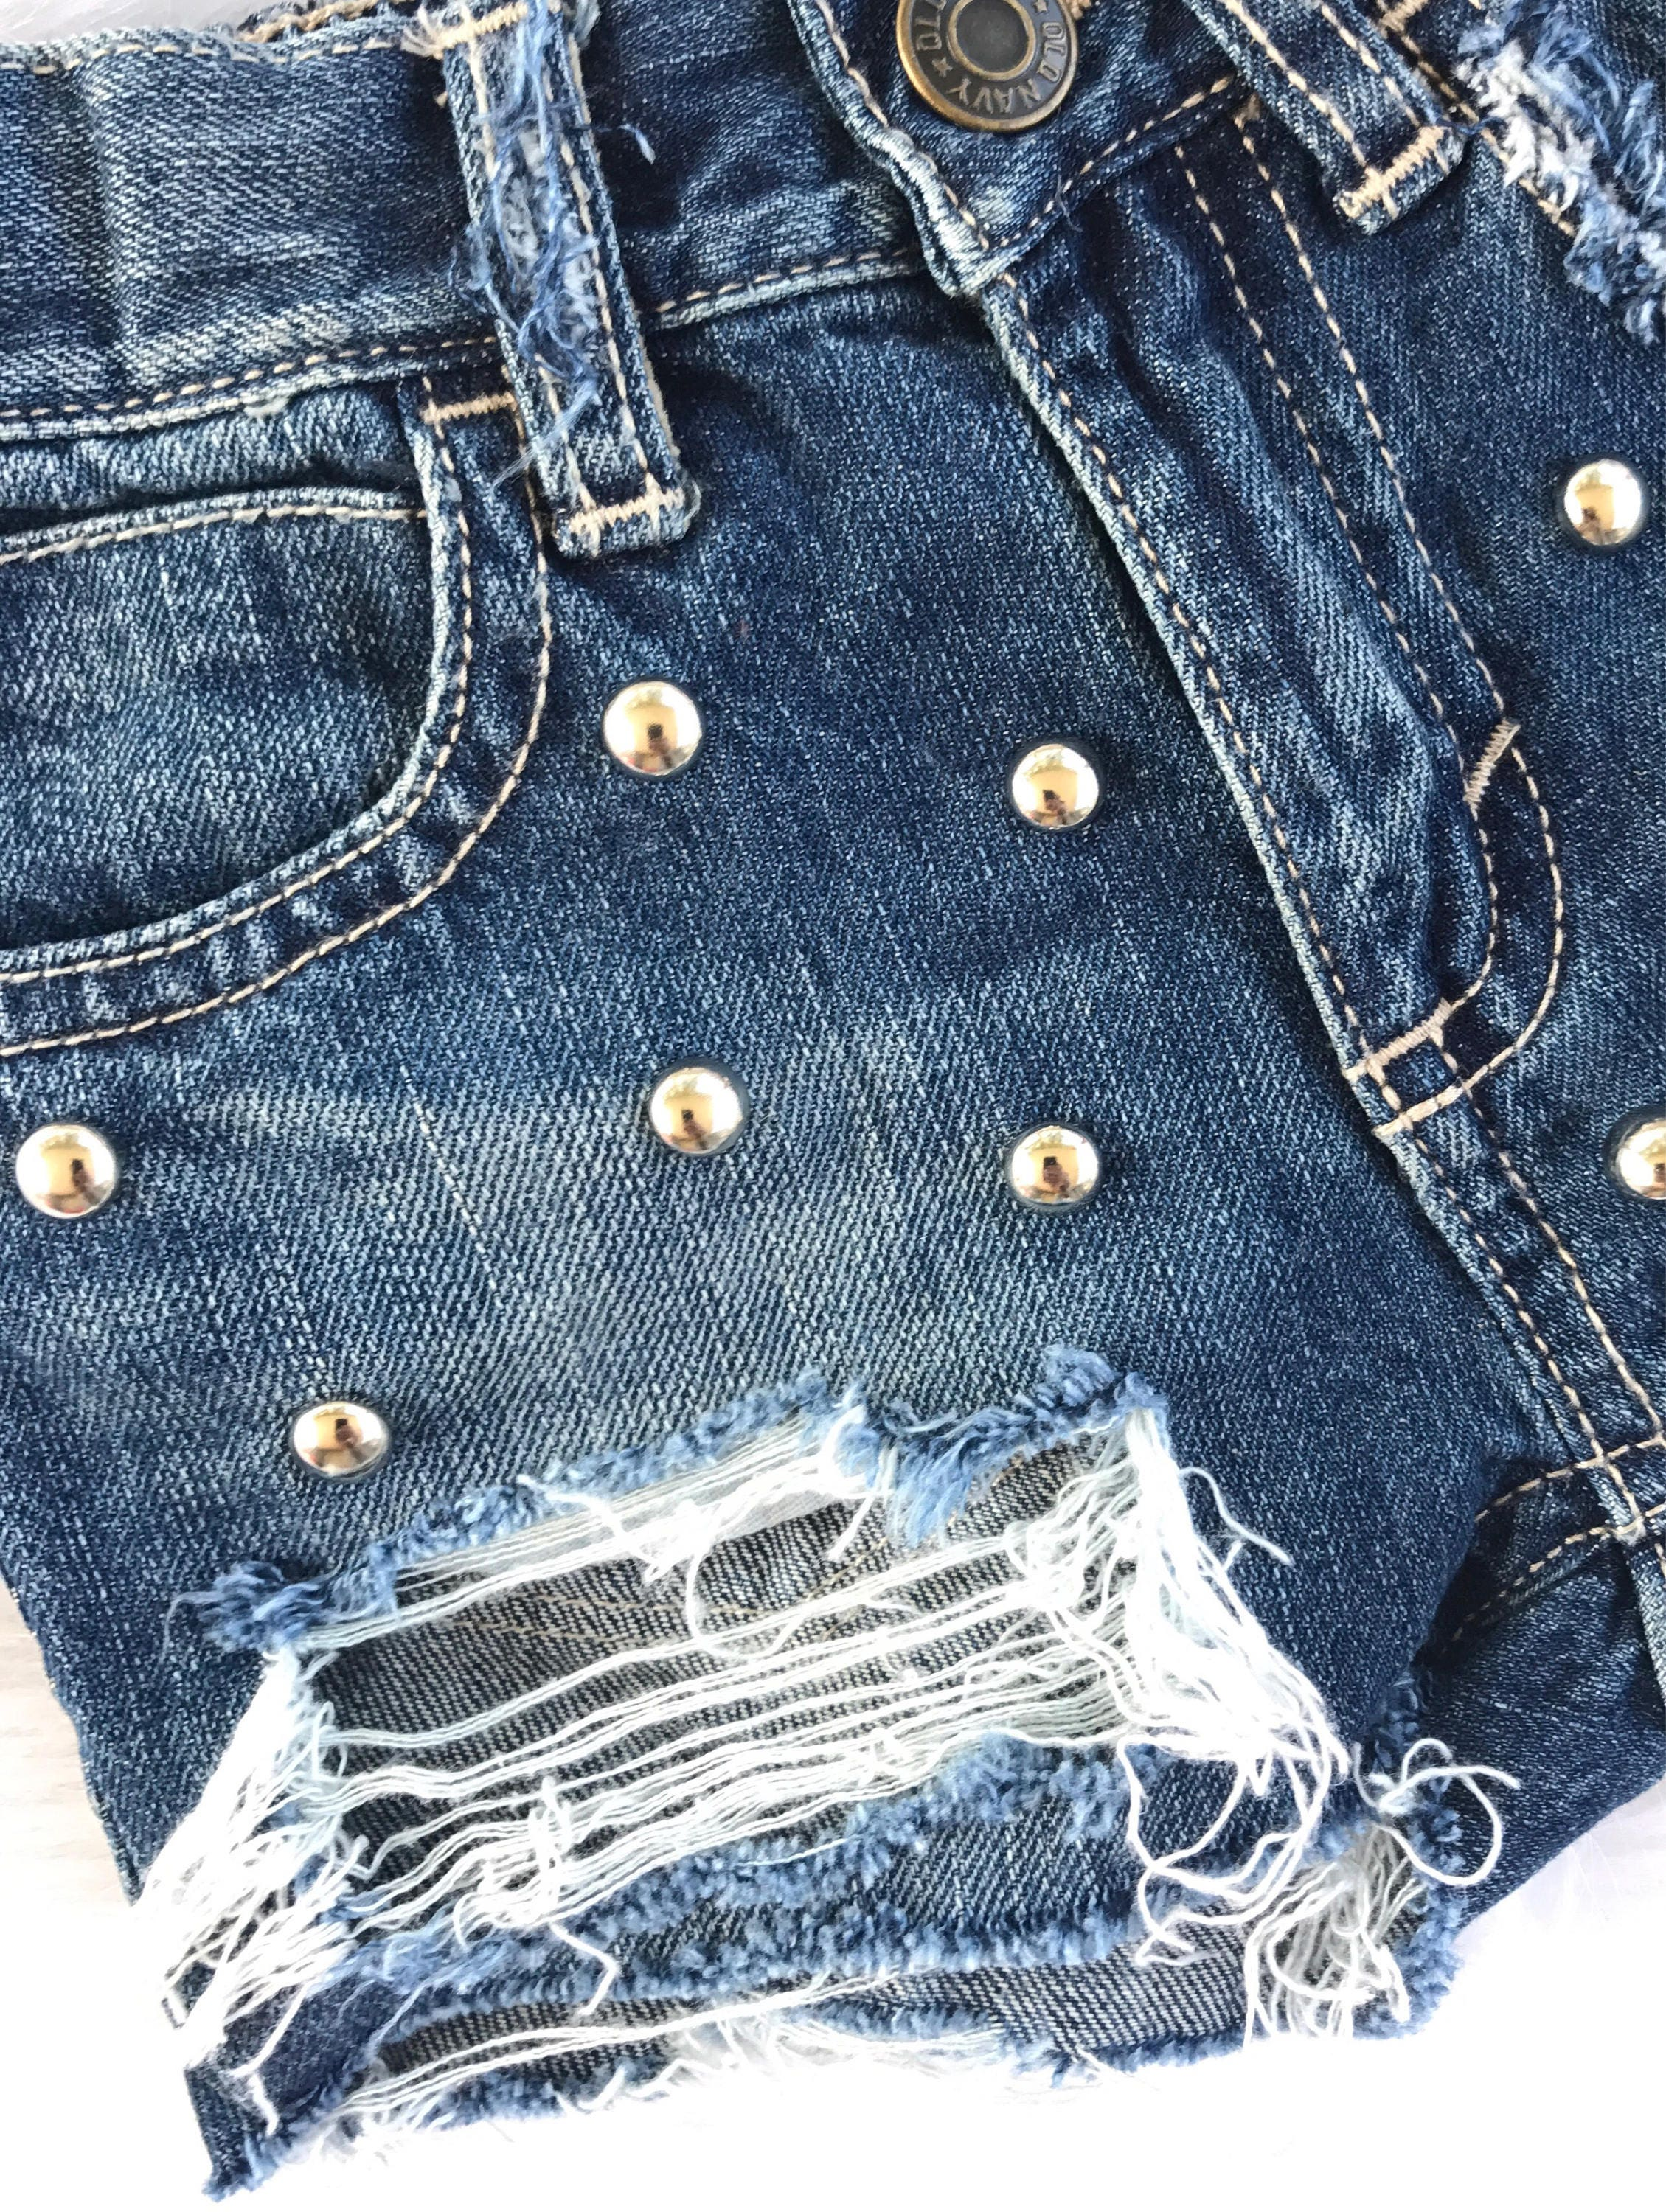 fe6d4d1595 BETTIES baby toddler girl distressed destroyed deconstructed ripped cut off  studded denim jeans shorts